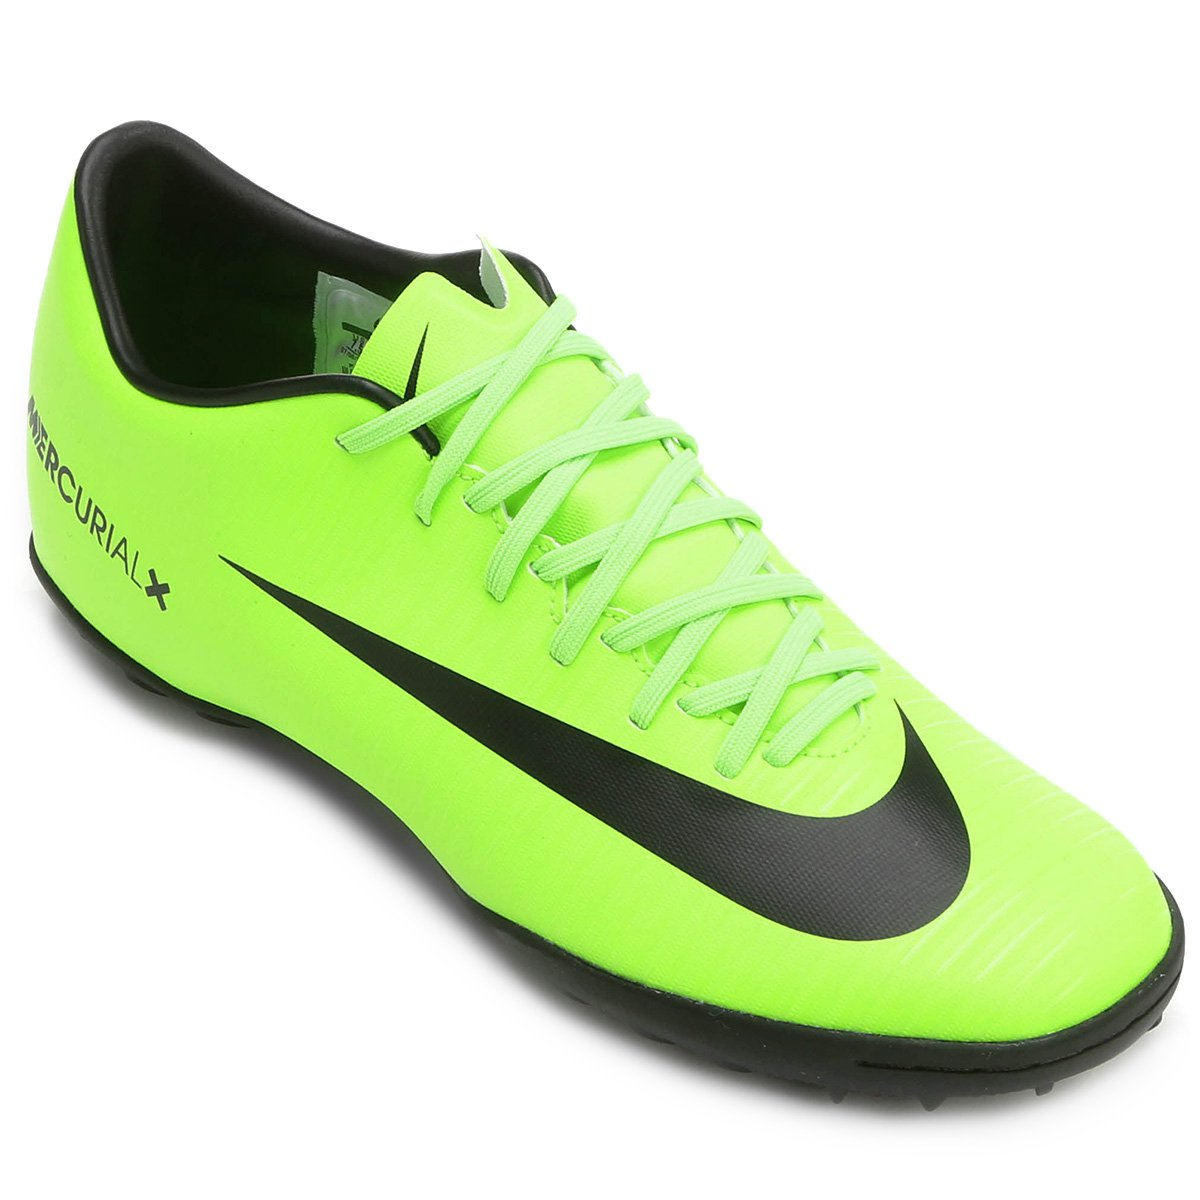 1bb94420def21 Chuteira Society Nike Mercurial Victory 6 TF - Compre Agora